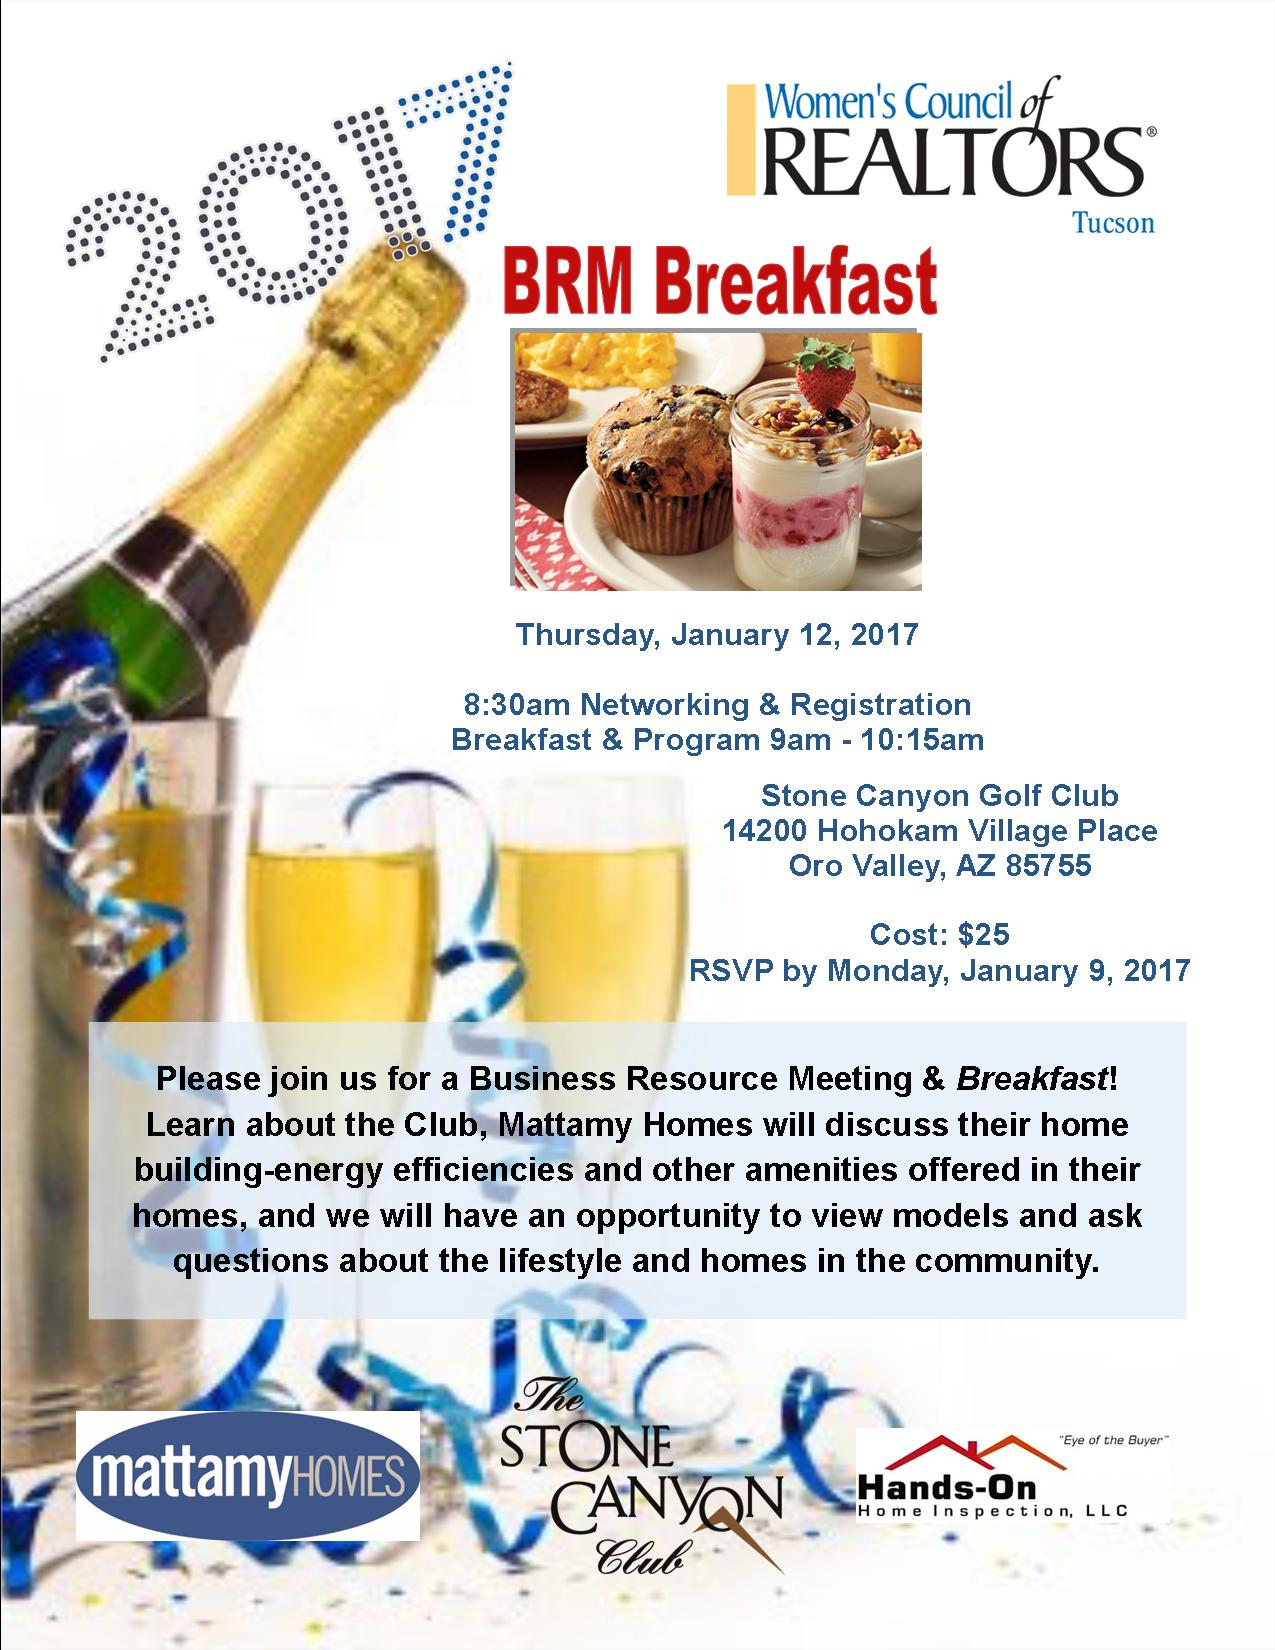 wcr-brm-breakfast-january-2017-1